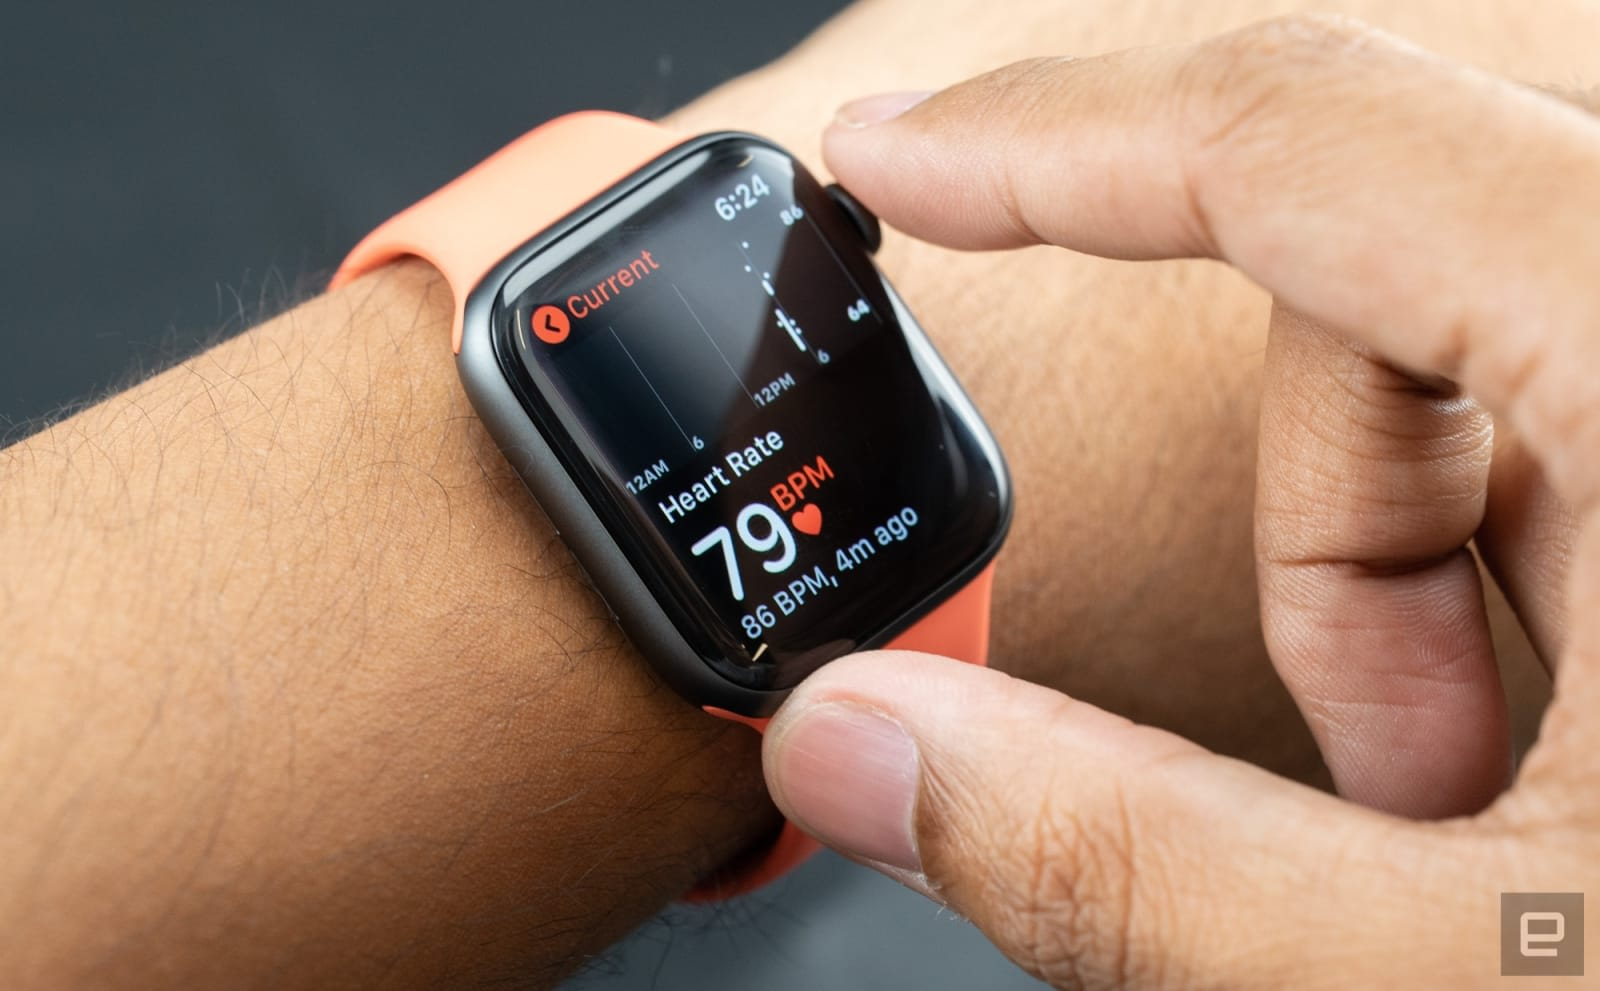 Apple sold almost three times more smartwatches than its closest rival